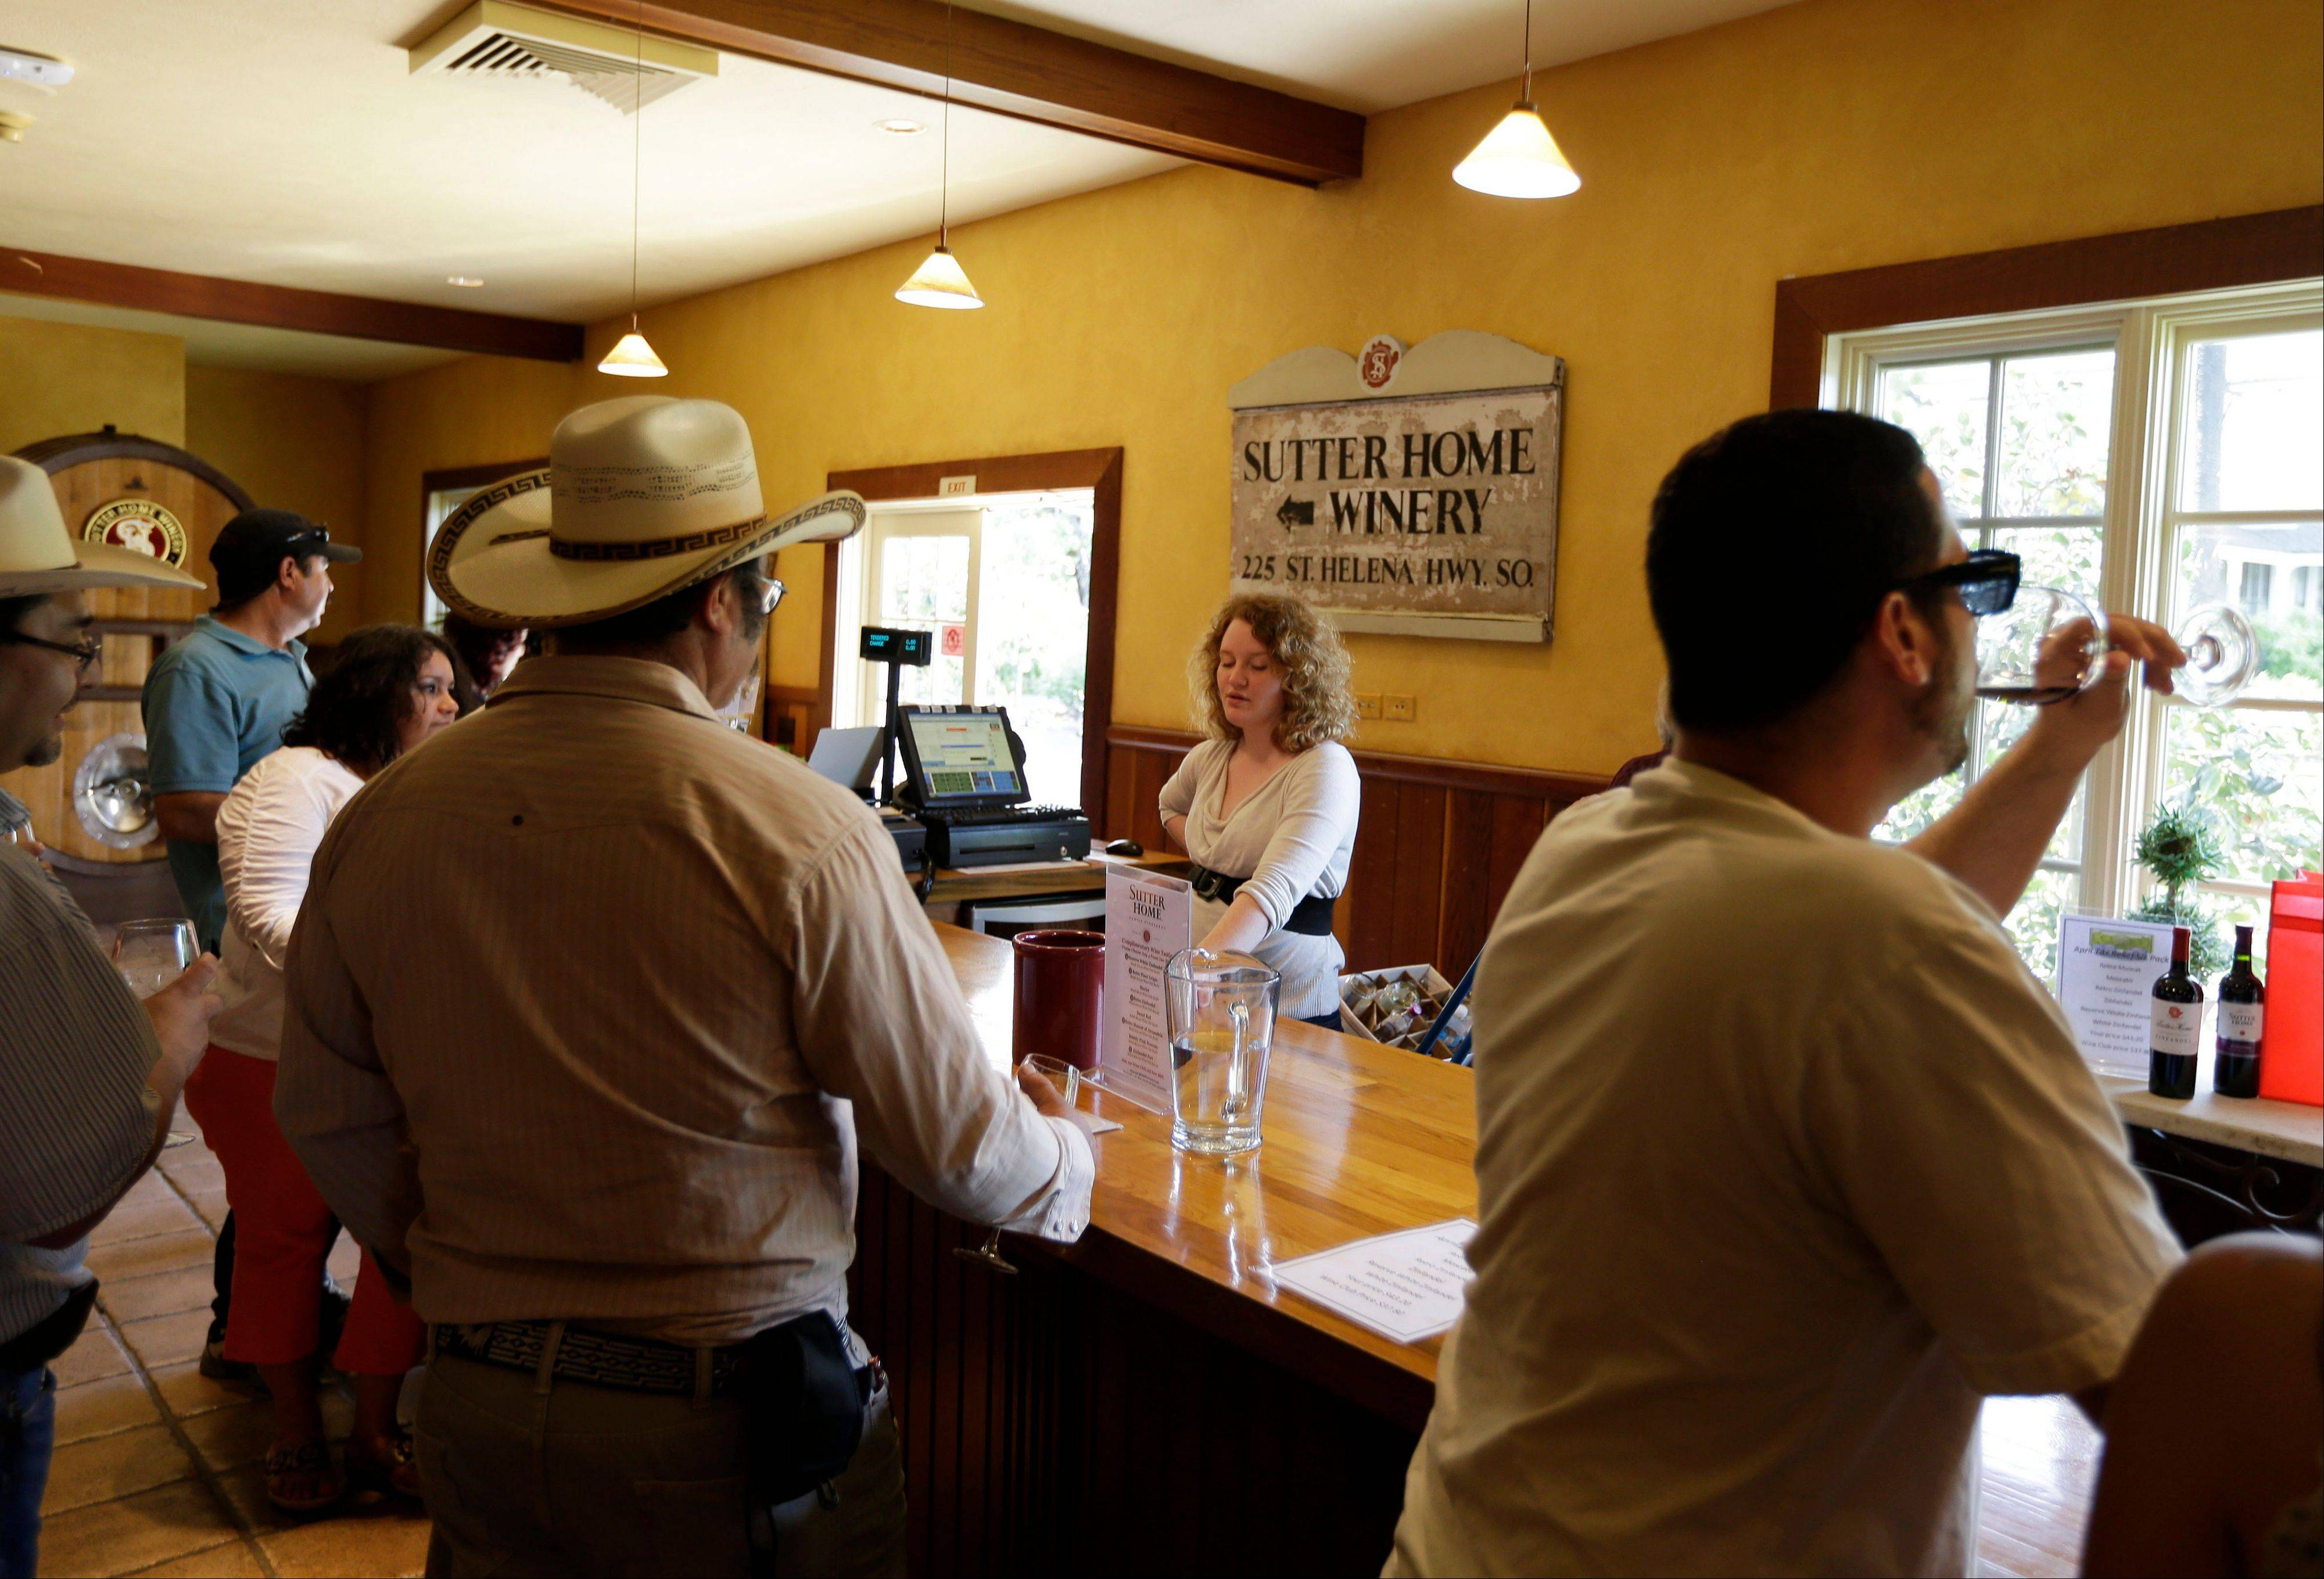 People can try up to four free tastes of wine at Sutter Home Winery in St. Helena, Calif.